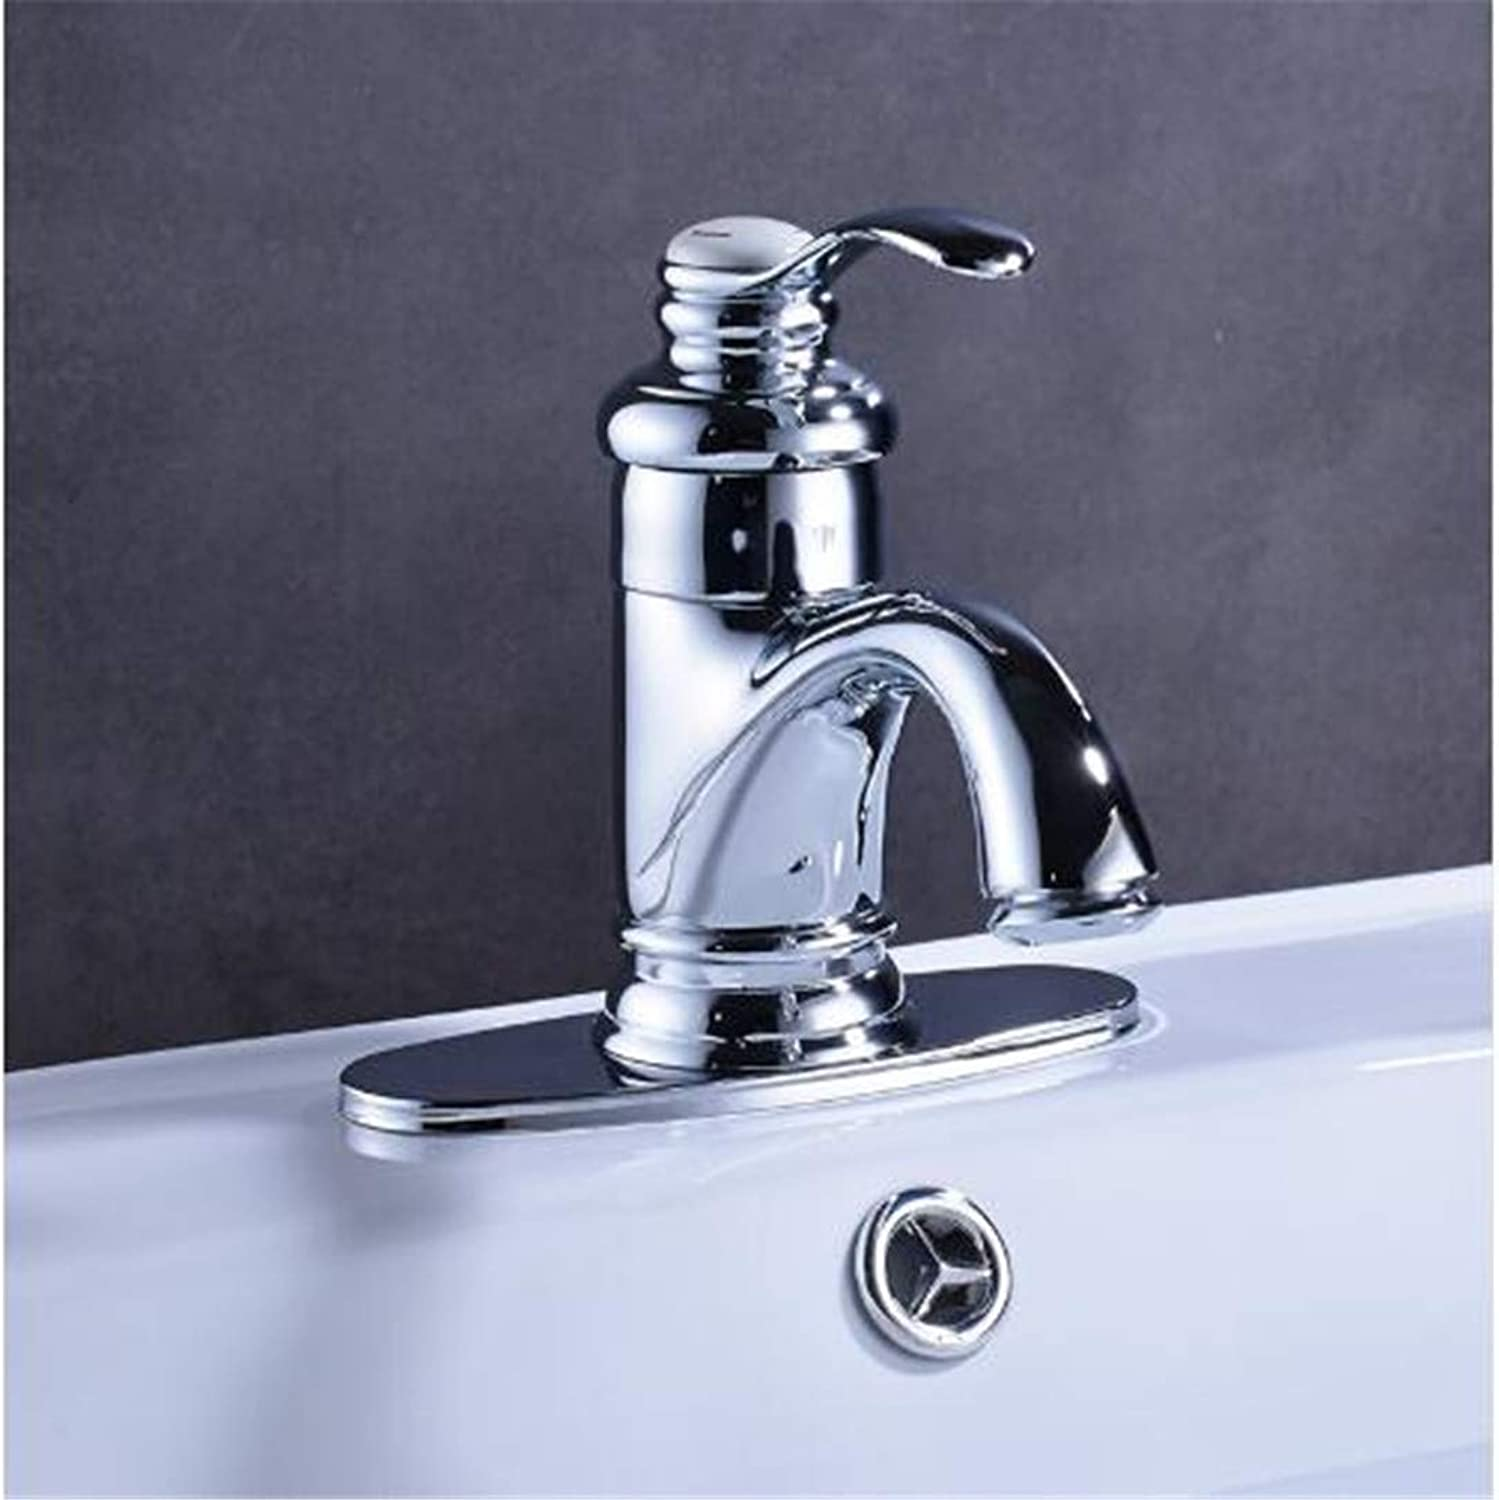 Oudan Taps Kitchen Faucet Bathroom Taps Faucet Waterfall Taphigh Quality Best Price Chrome Finish Bathroom Basin Faucet with Hole Cover Plate (color   -, Size   -)